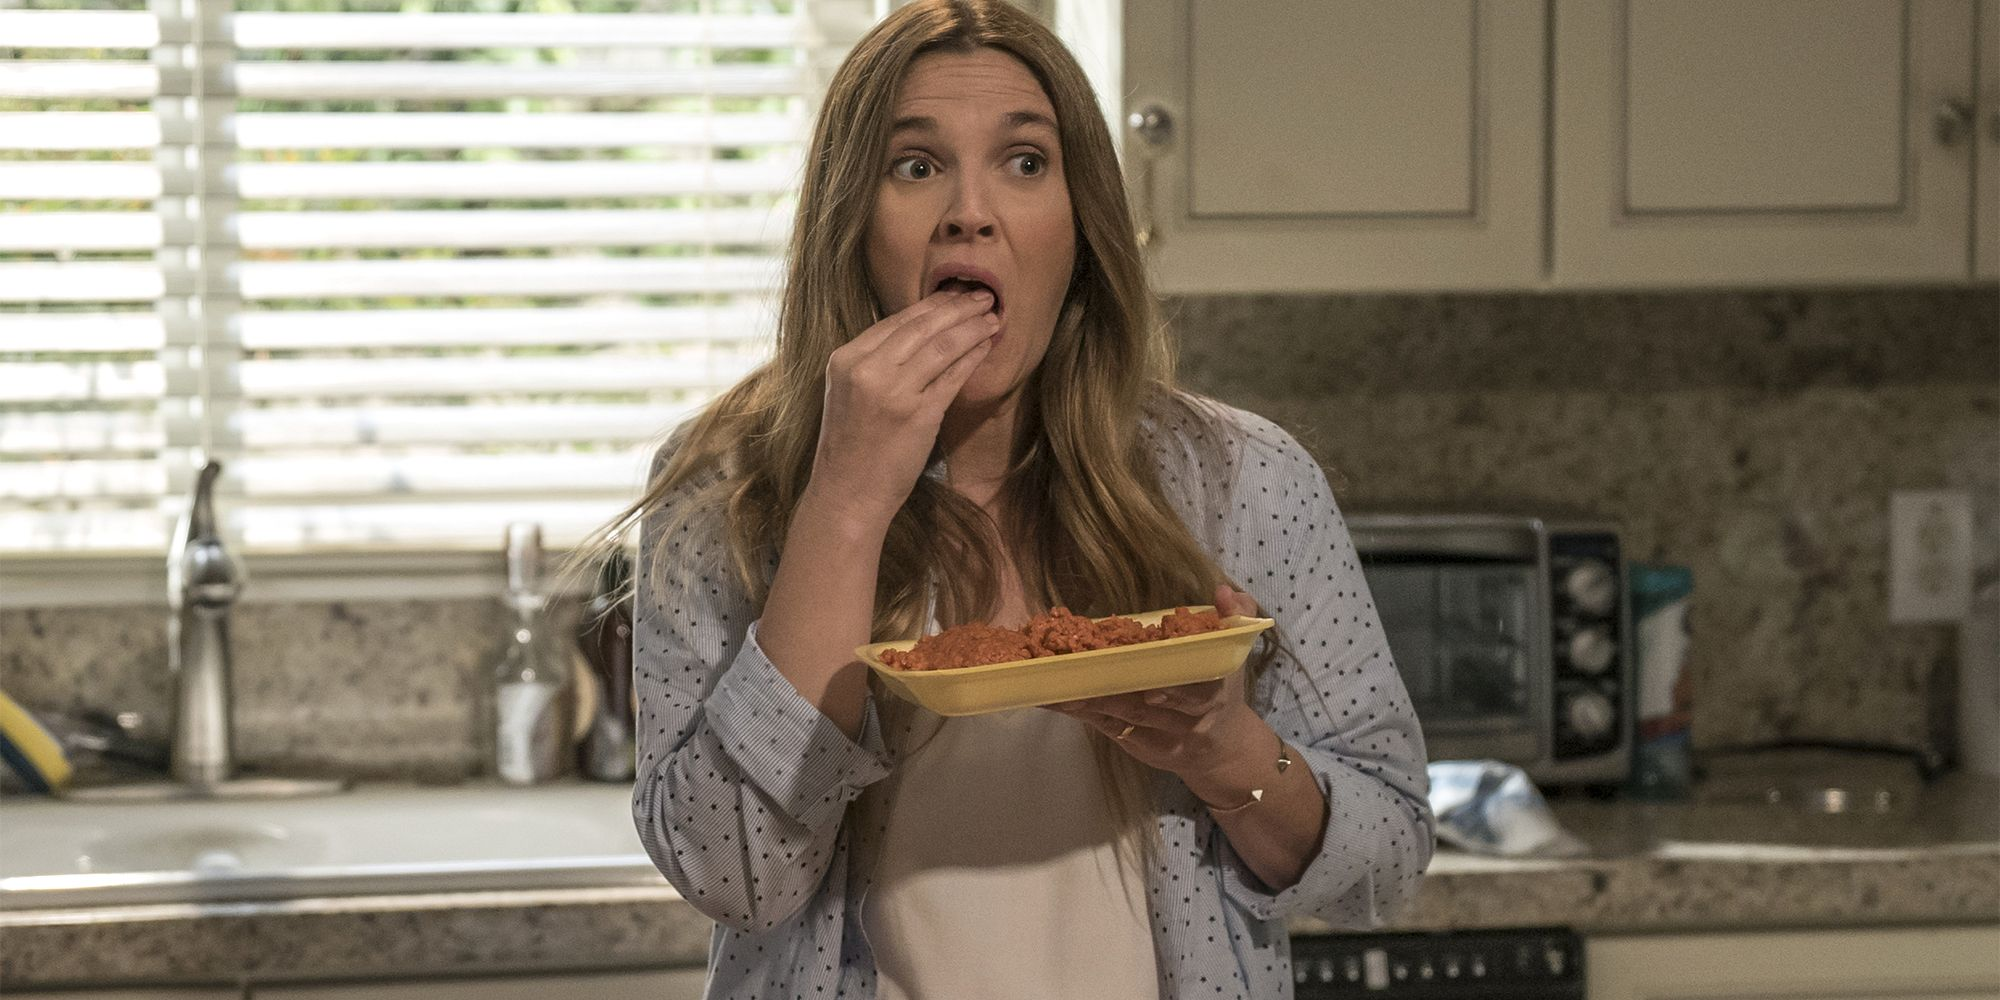 """<p>Drew Barrymore's long-mysterious Netflix comedy unveiled its cheerfully grisly premise recently: Barrymore plays a suburban soccer mom whose unusual eating habits cause some disruption within her cozy family life. (Spoiler: She's a zombie, but prefers not to use that term.)<span class=""""redactor-invisible-space"""" data-verified=""""redactor"""" data-redactor-tag=""""span"""" data-redactor-class=""""redactor-invisible-space""""></span></p><p><em data-verified=""""redactor"""" data-redactor-tag=""""em"""">Santa Clarita Diet</em><span class=""""redactor-invisible-space""""> premieres Friday,February 3with 13 episodesonNetflix<span class=""""redactor-invisible-space"""">.</span></span><br></p>"""